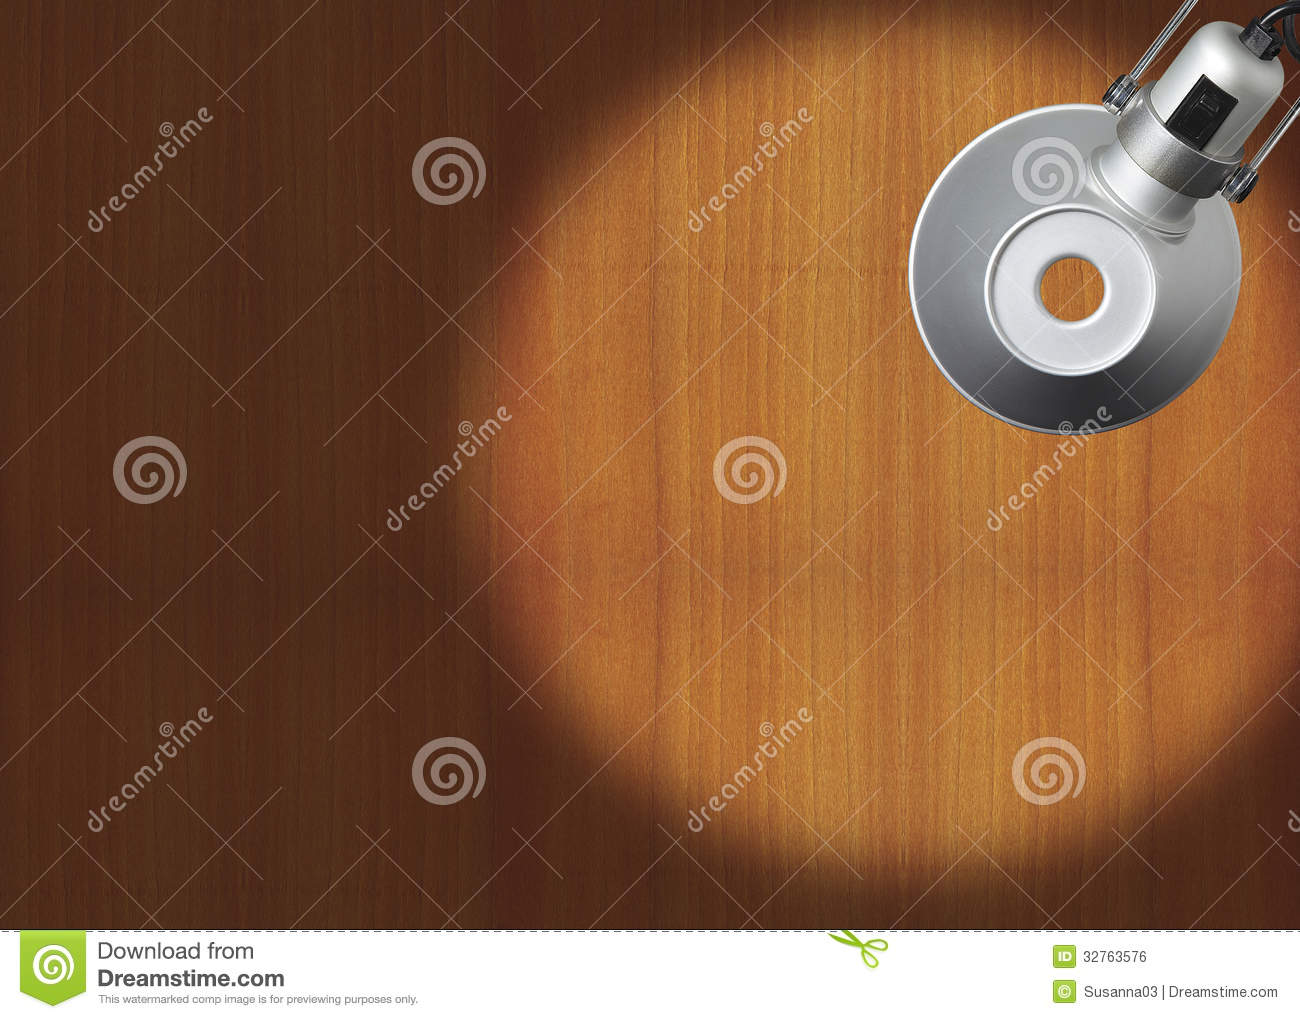 Table top view royalty free stock image image 32763576 royalty free stock photo download table top view geotapseo Gallery